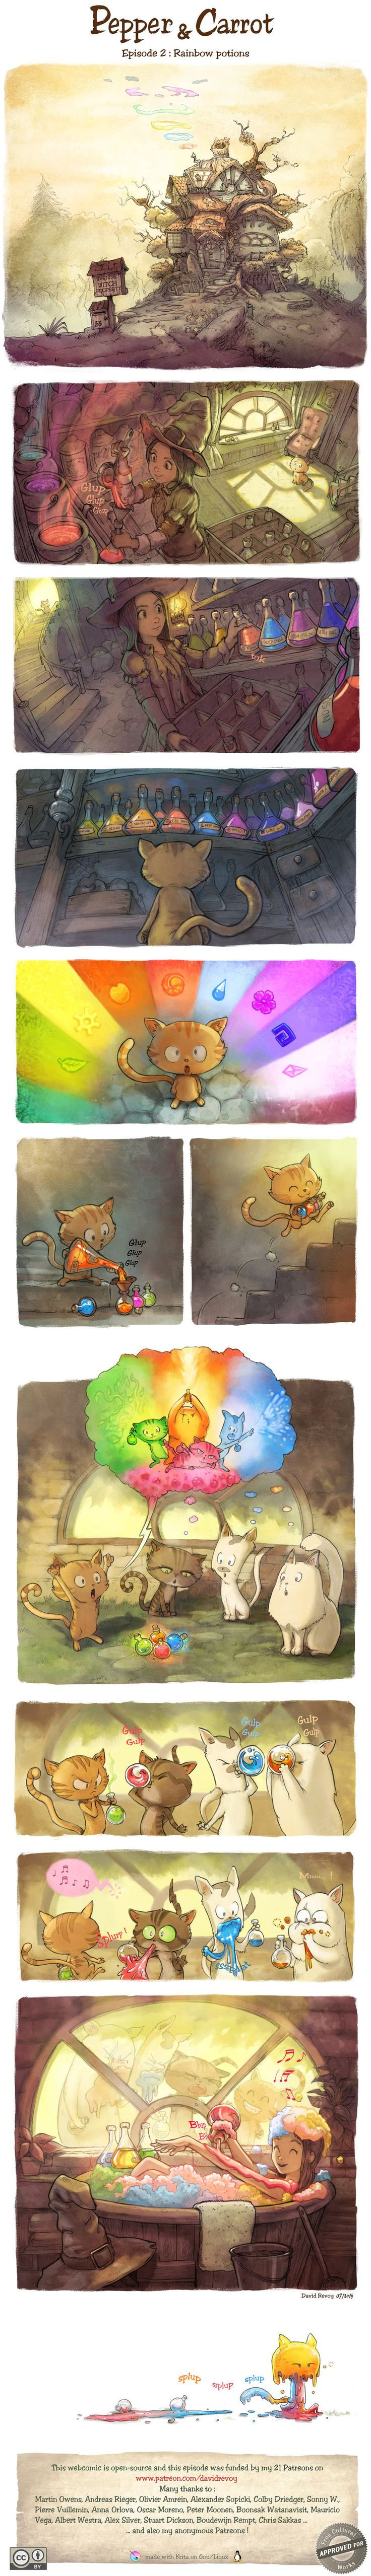 'Pepper and Carrot' Episode 2 : Rainbow potions by Deevad.deviantart.com on @deviantART